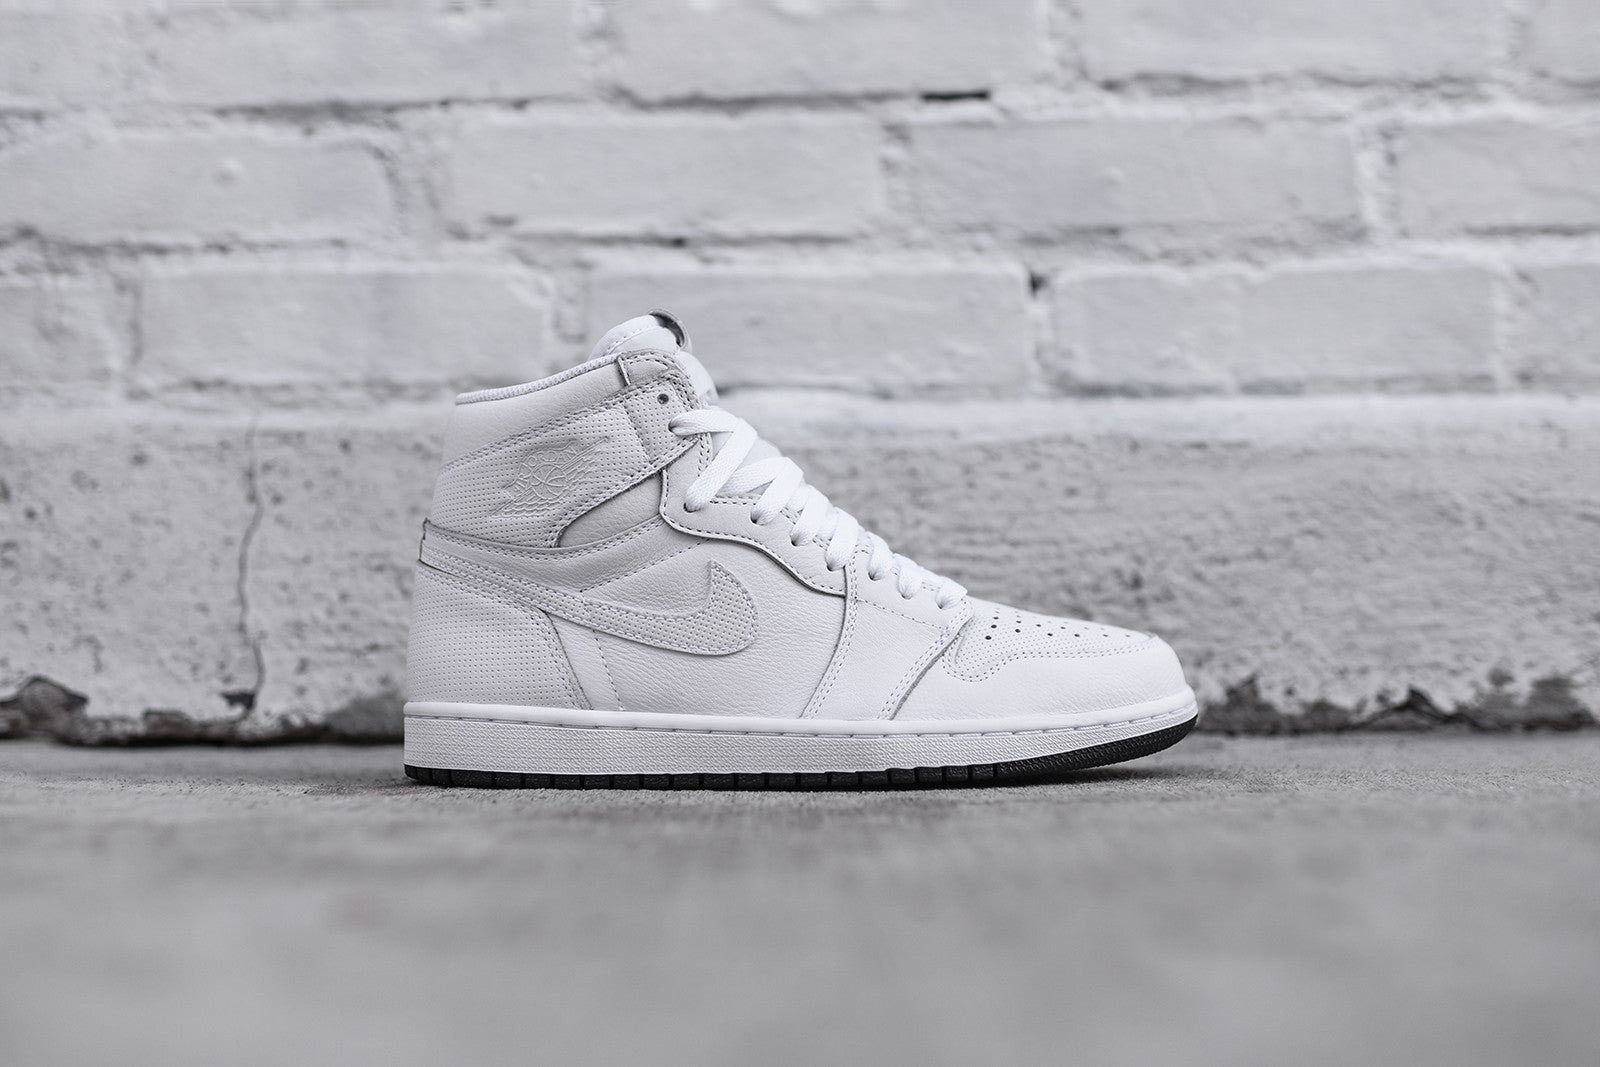 54430a49e575a9 Nike Air Jordan 1 Retro High OG - White   Black – Kith